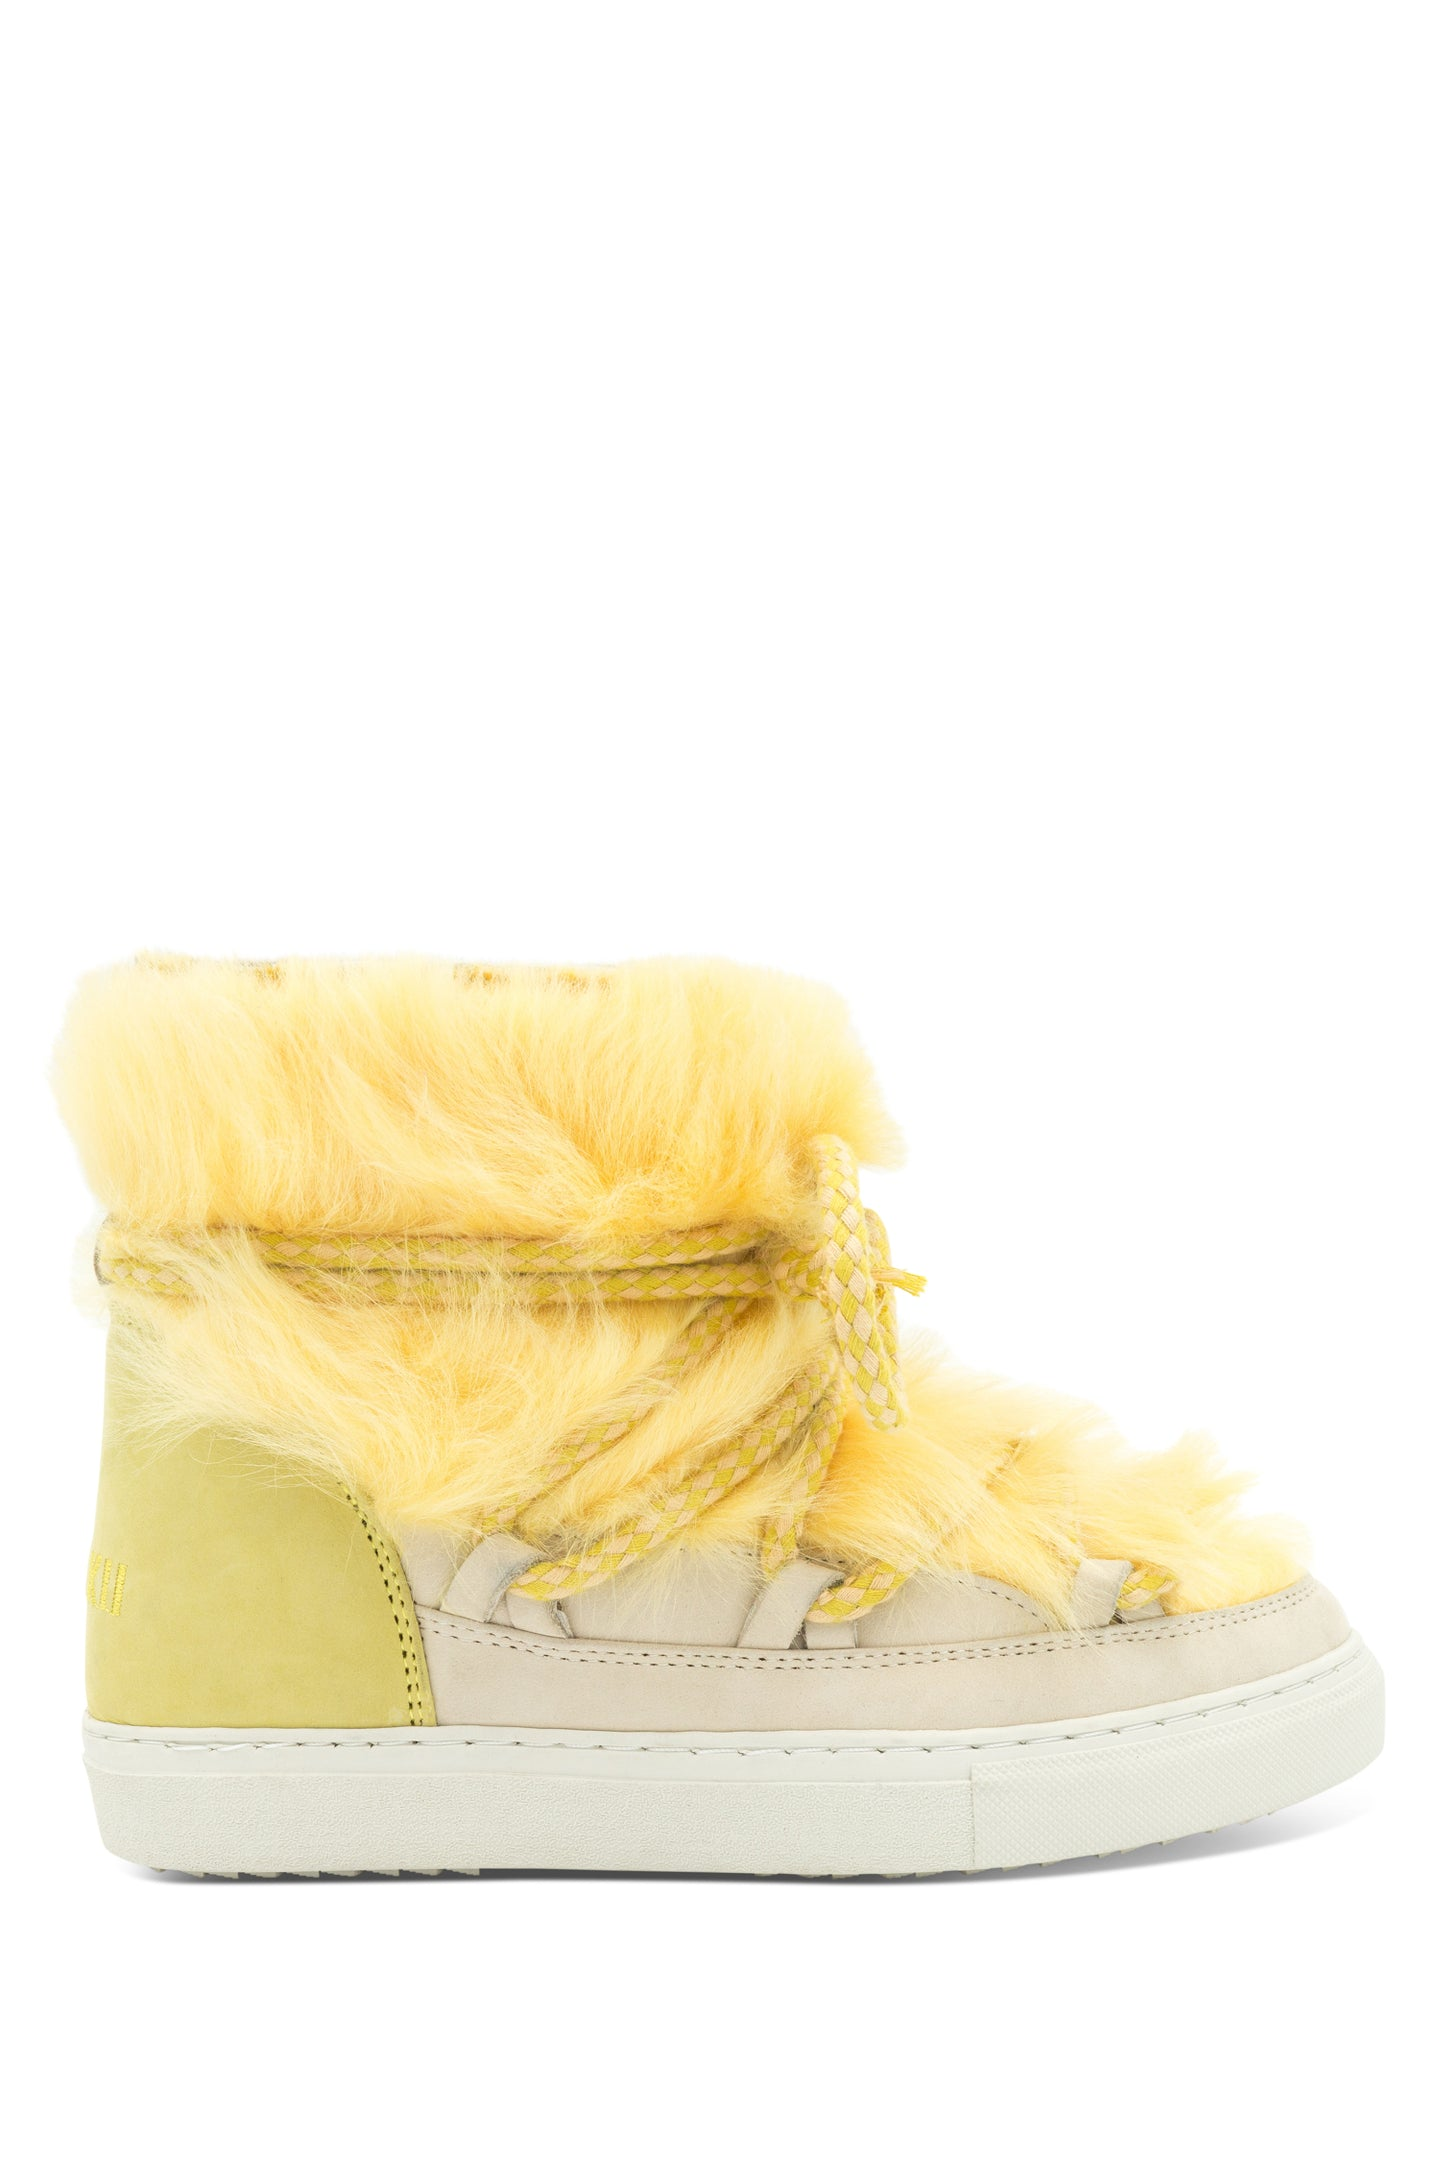 Buty Women Sneaker Toskana Yellow